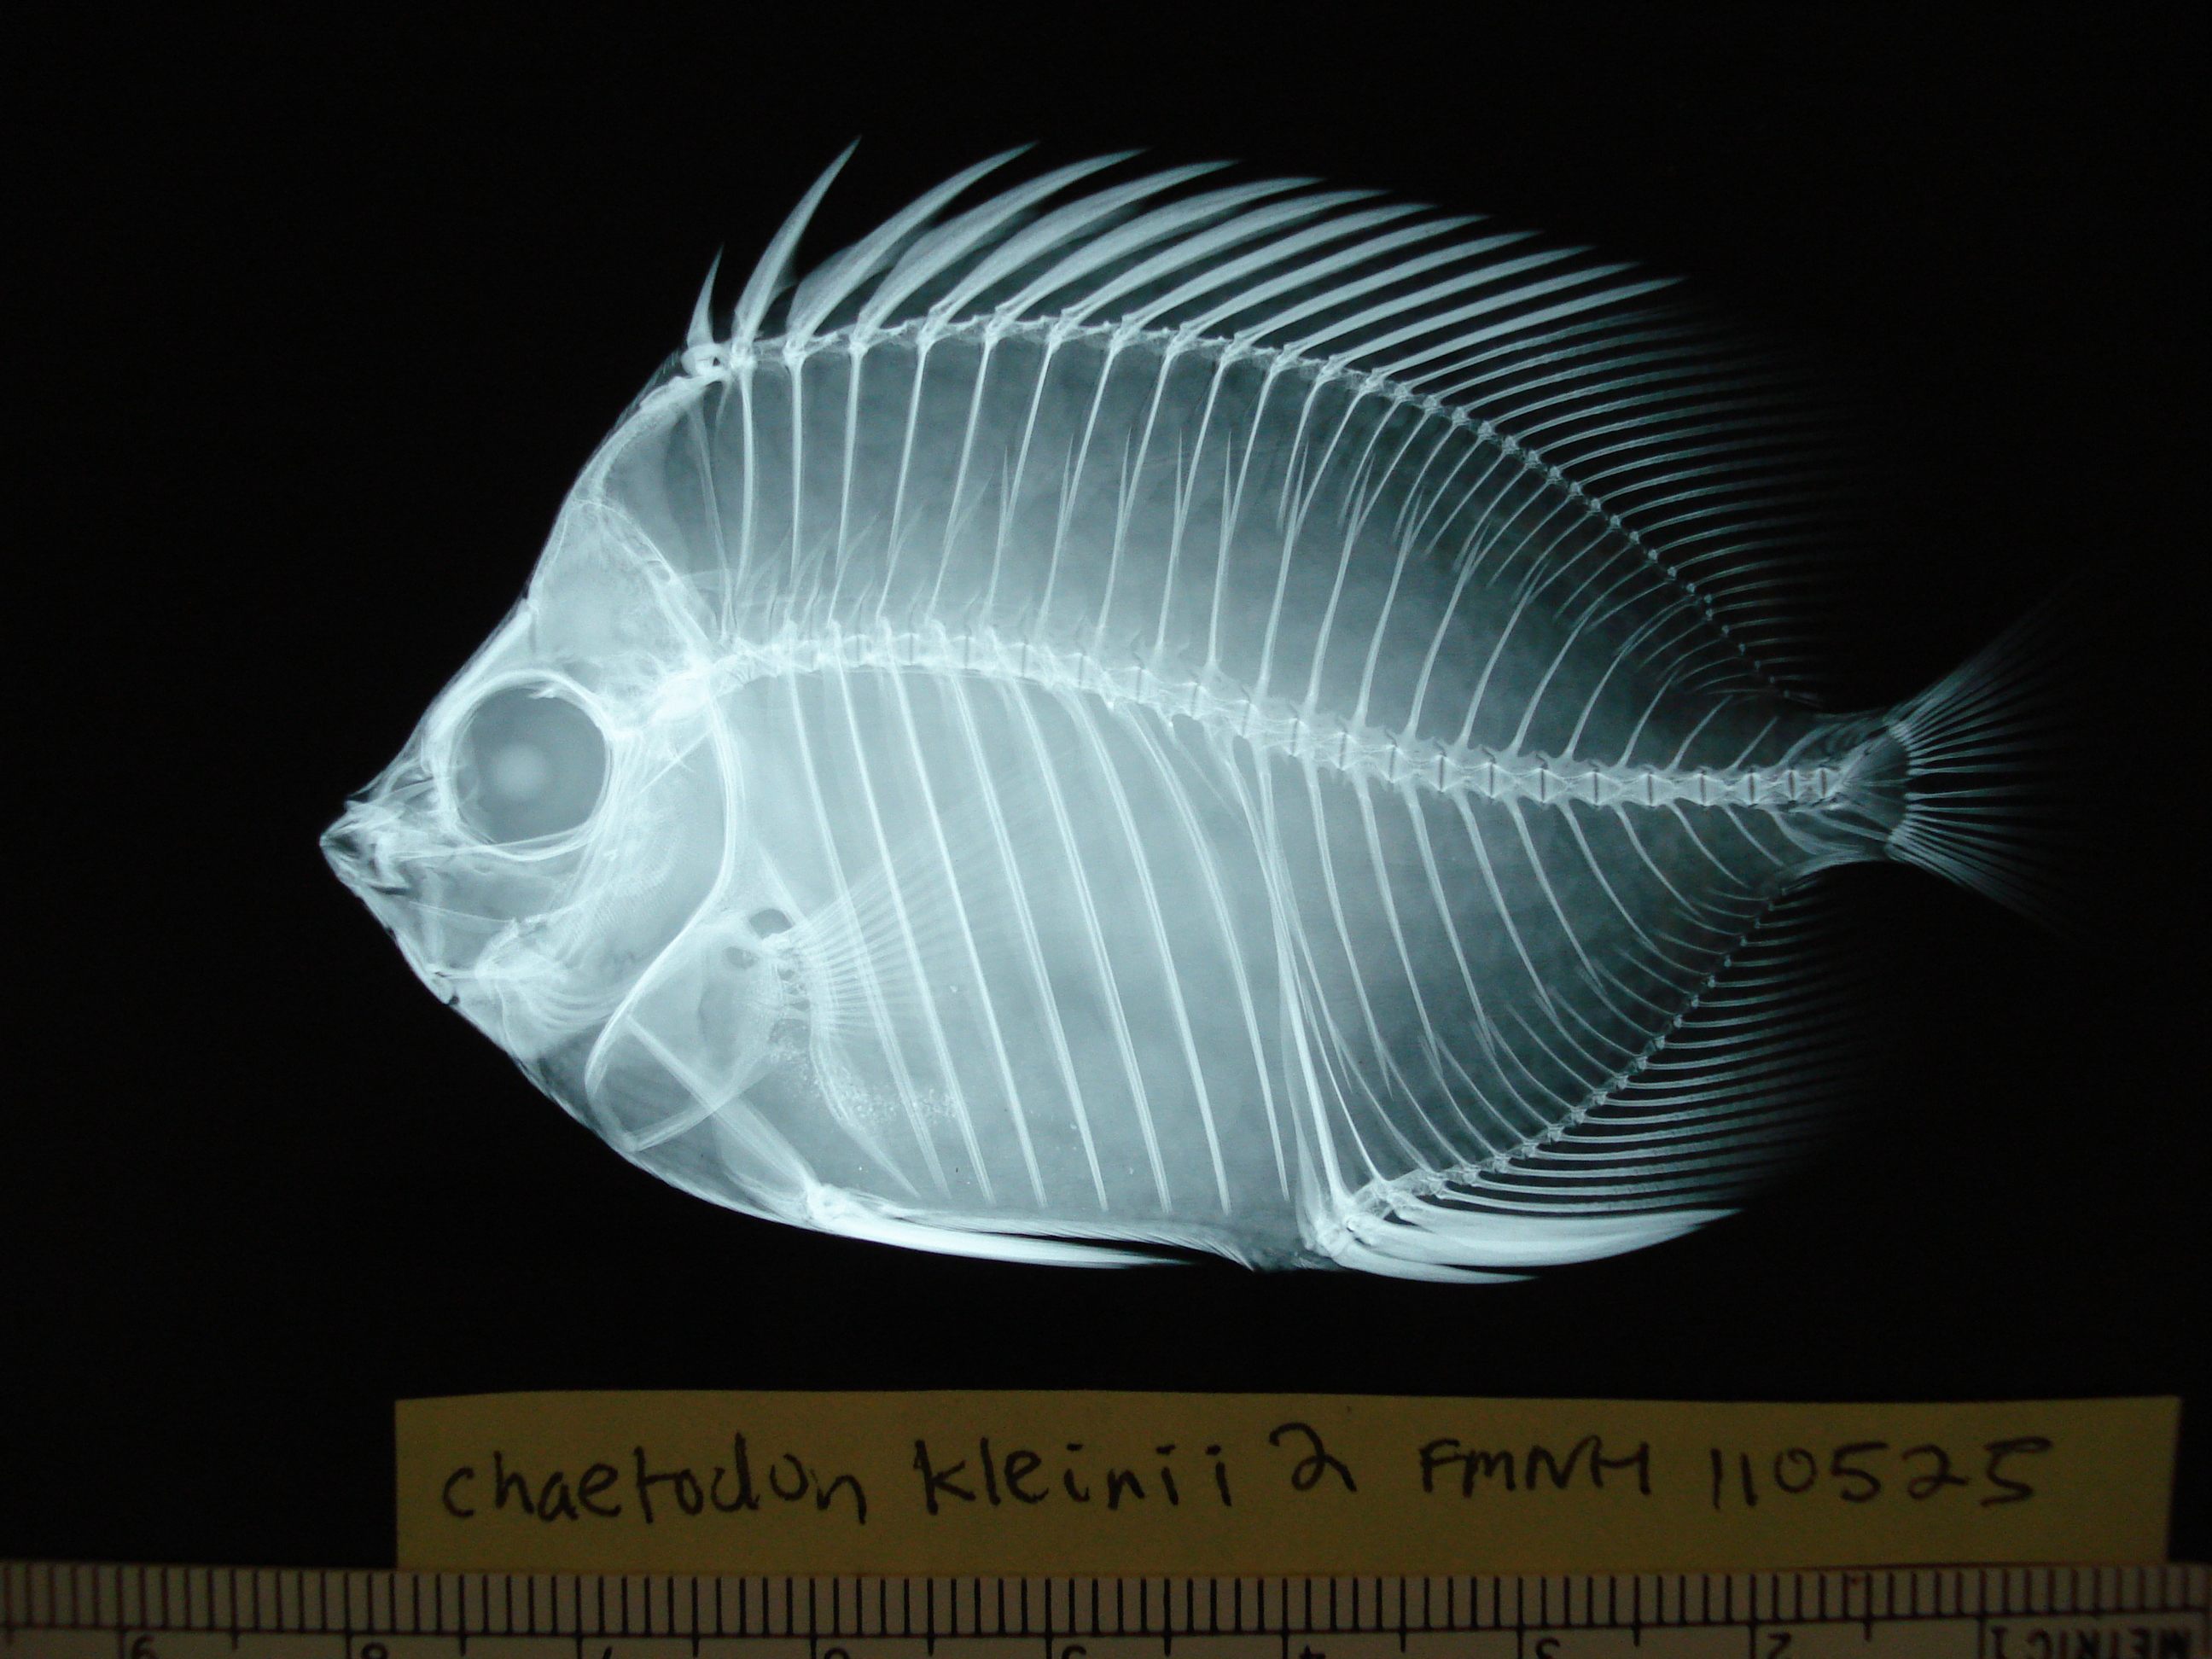 x-ray [Copyright] Field Museum of Natural History - CC BY-NC